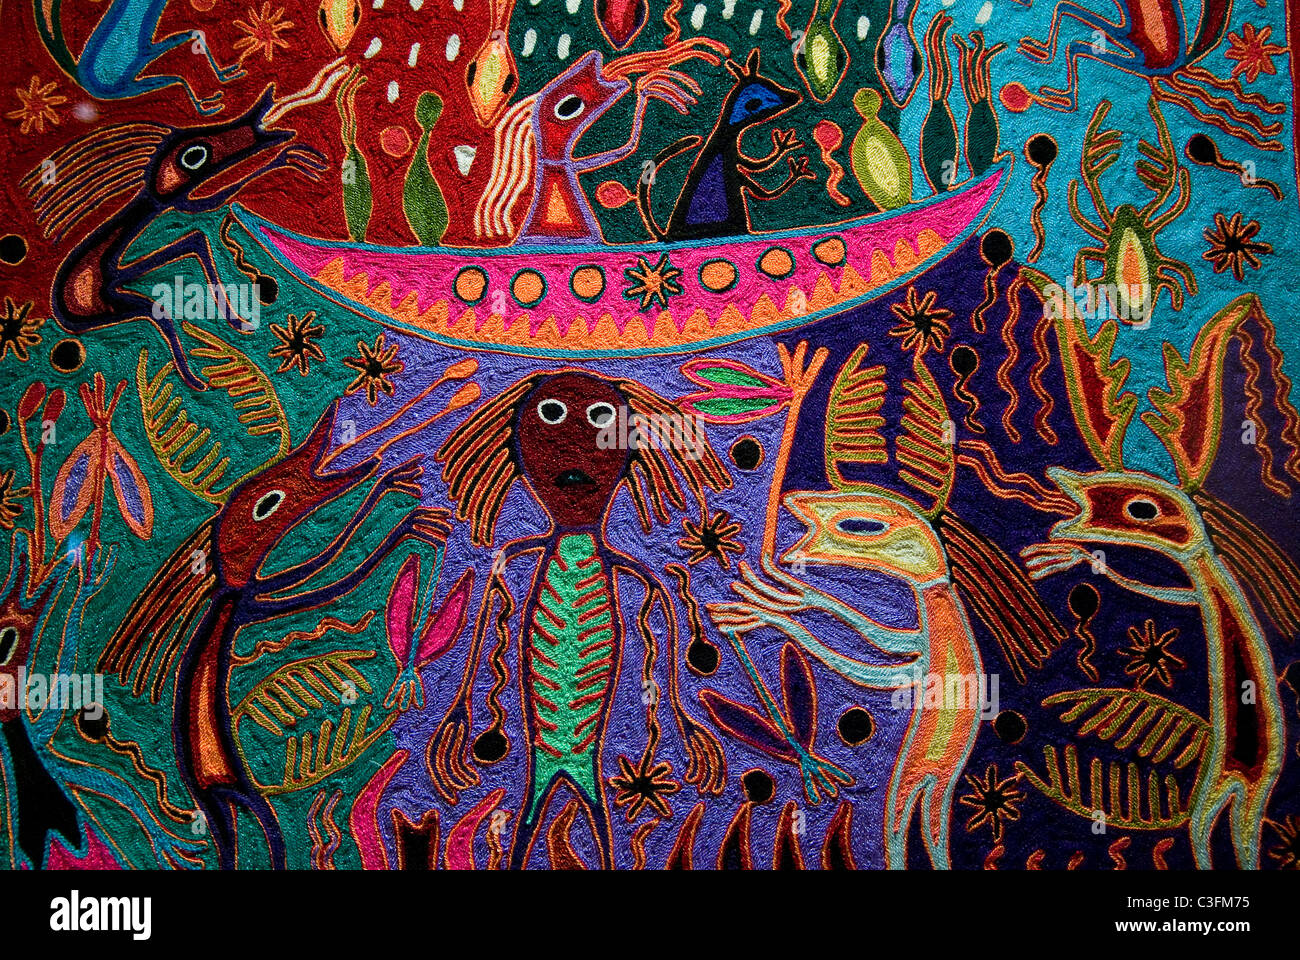 Arte Huichol For Sale Huichol Stock Photos Huichol Stock Images Alamy